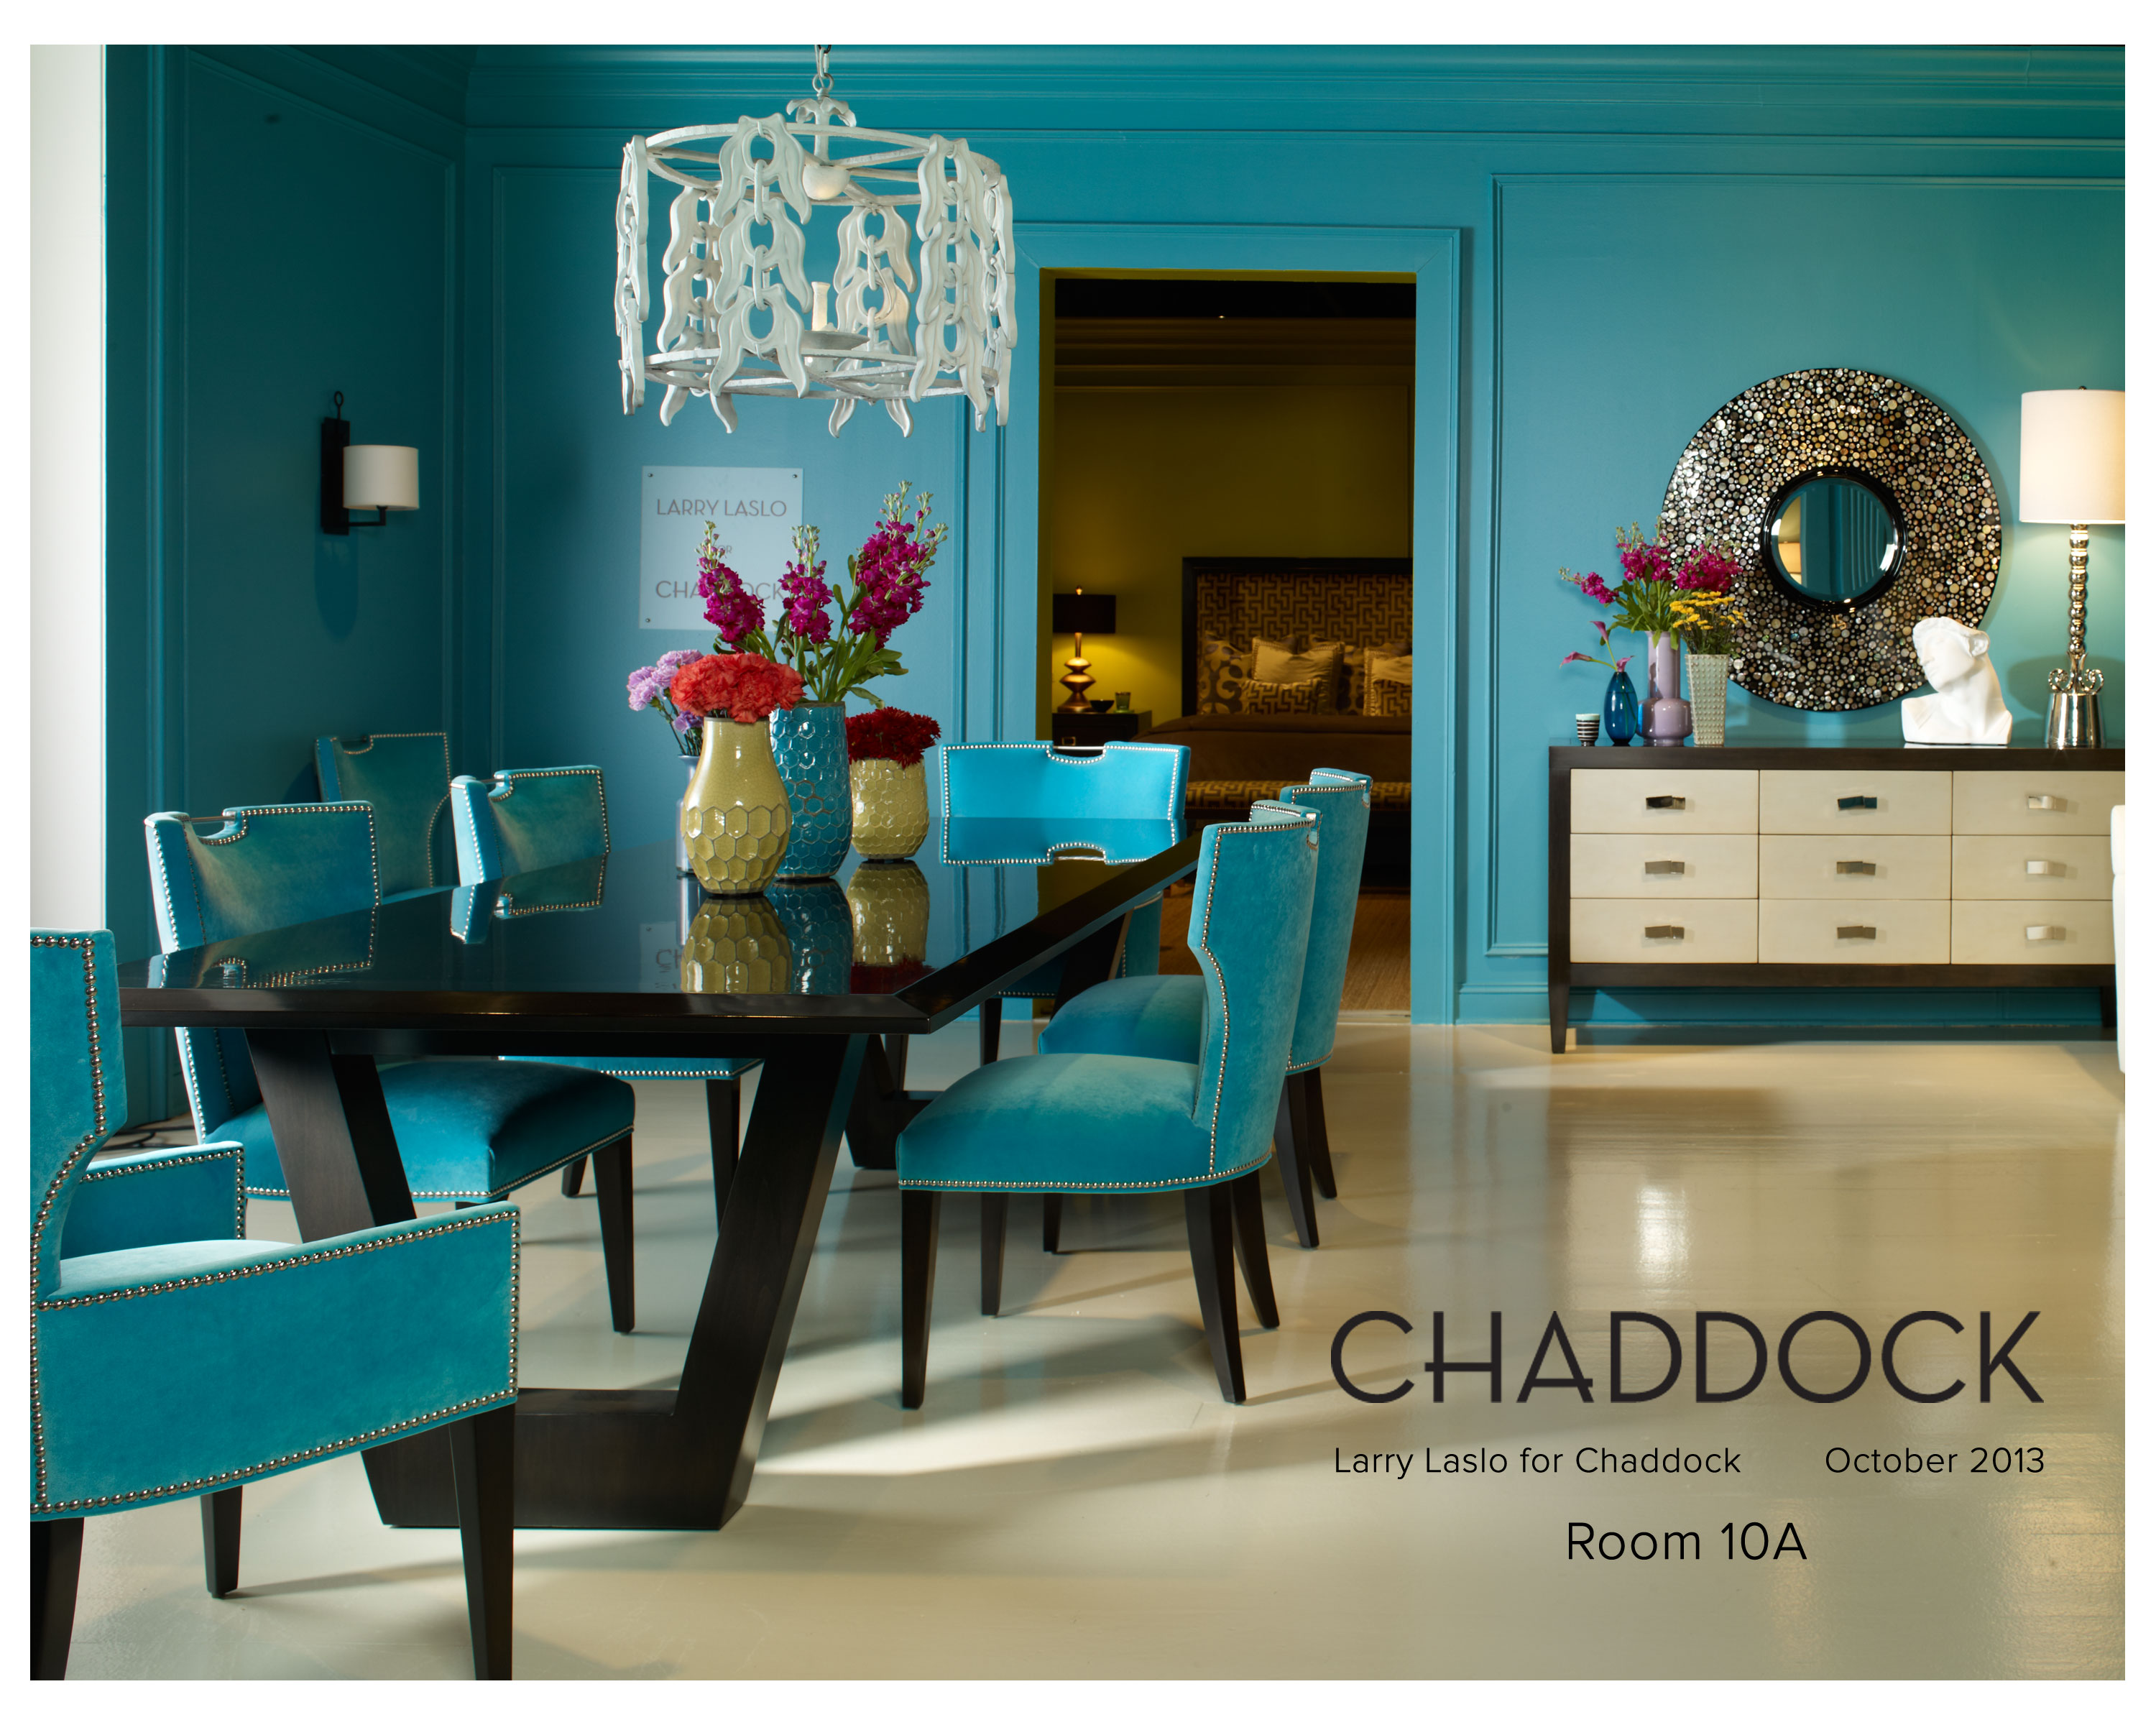 Chaddock is American Luxury